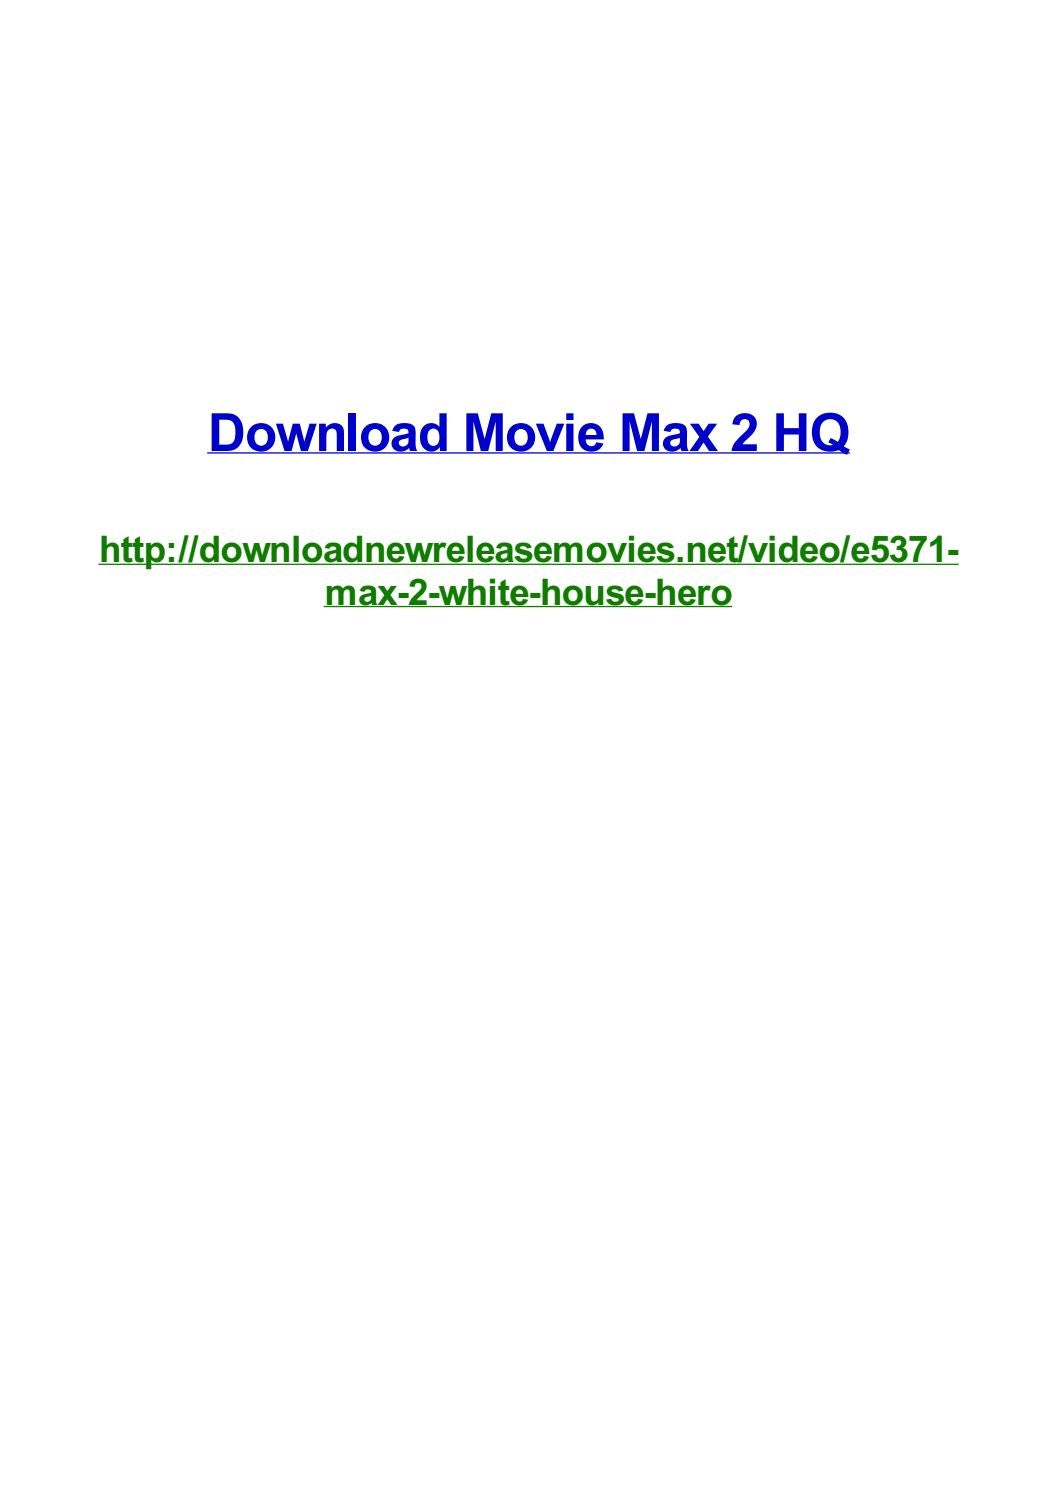 Download movie max 2 hq by Frank Seamons - issuu